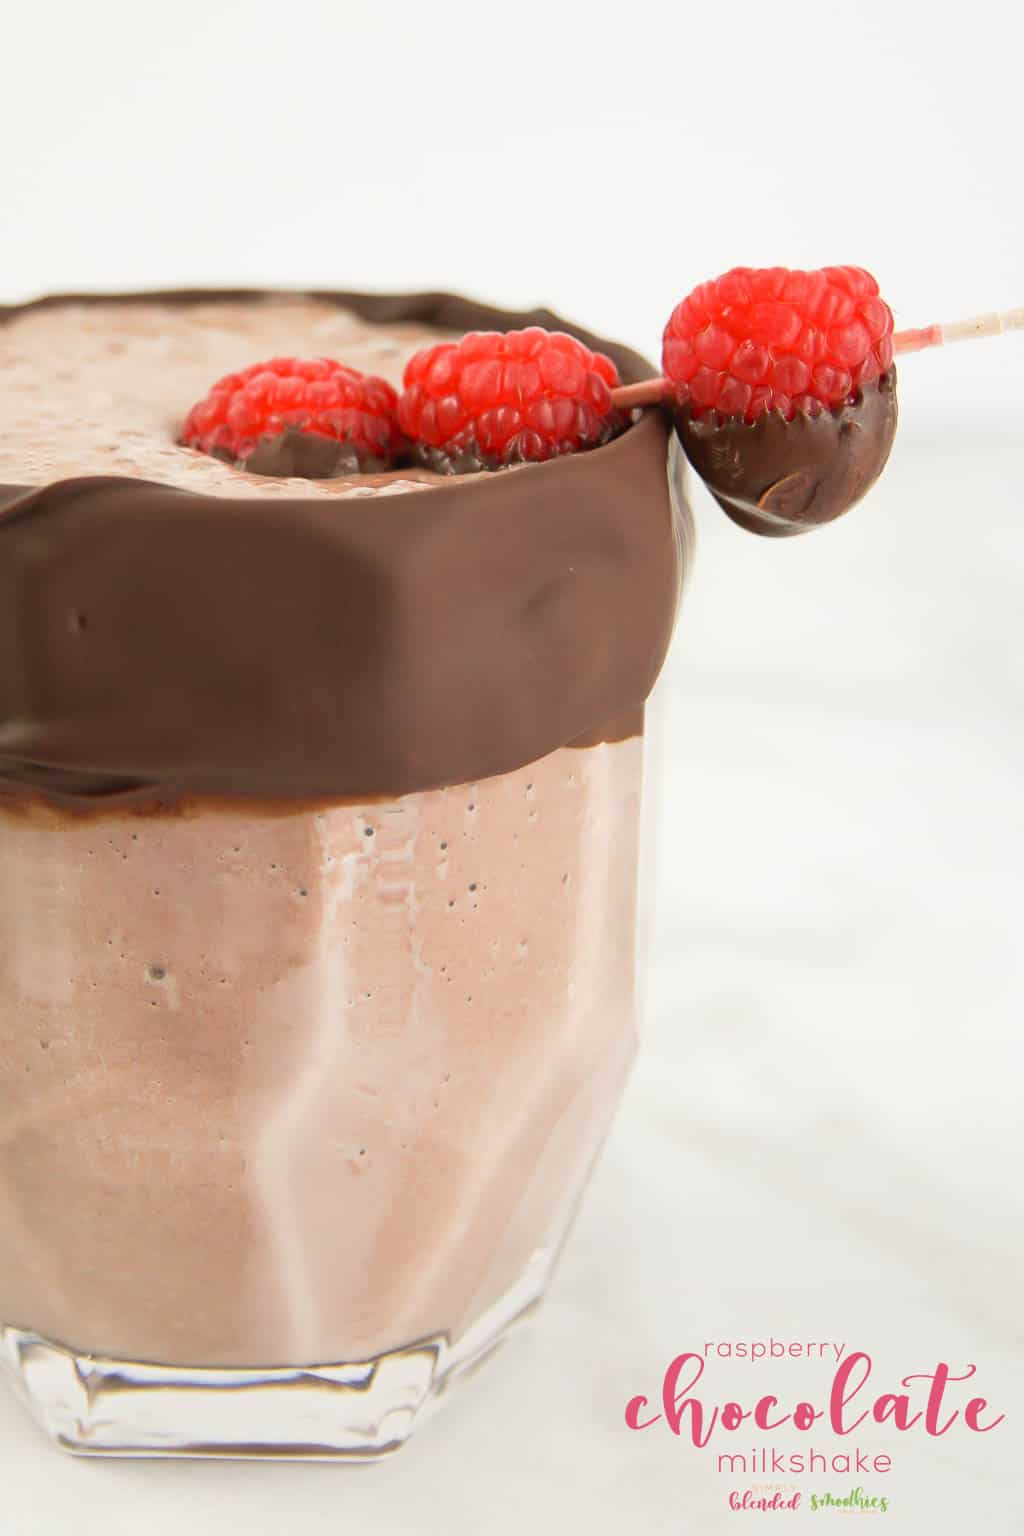 Raspberry Chocolate Milkshake non-alcoholic drinks